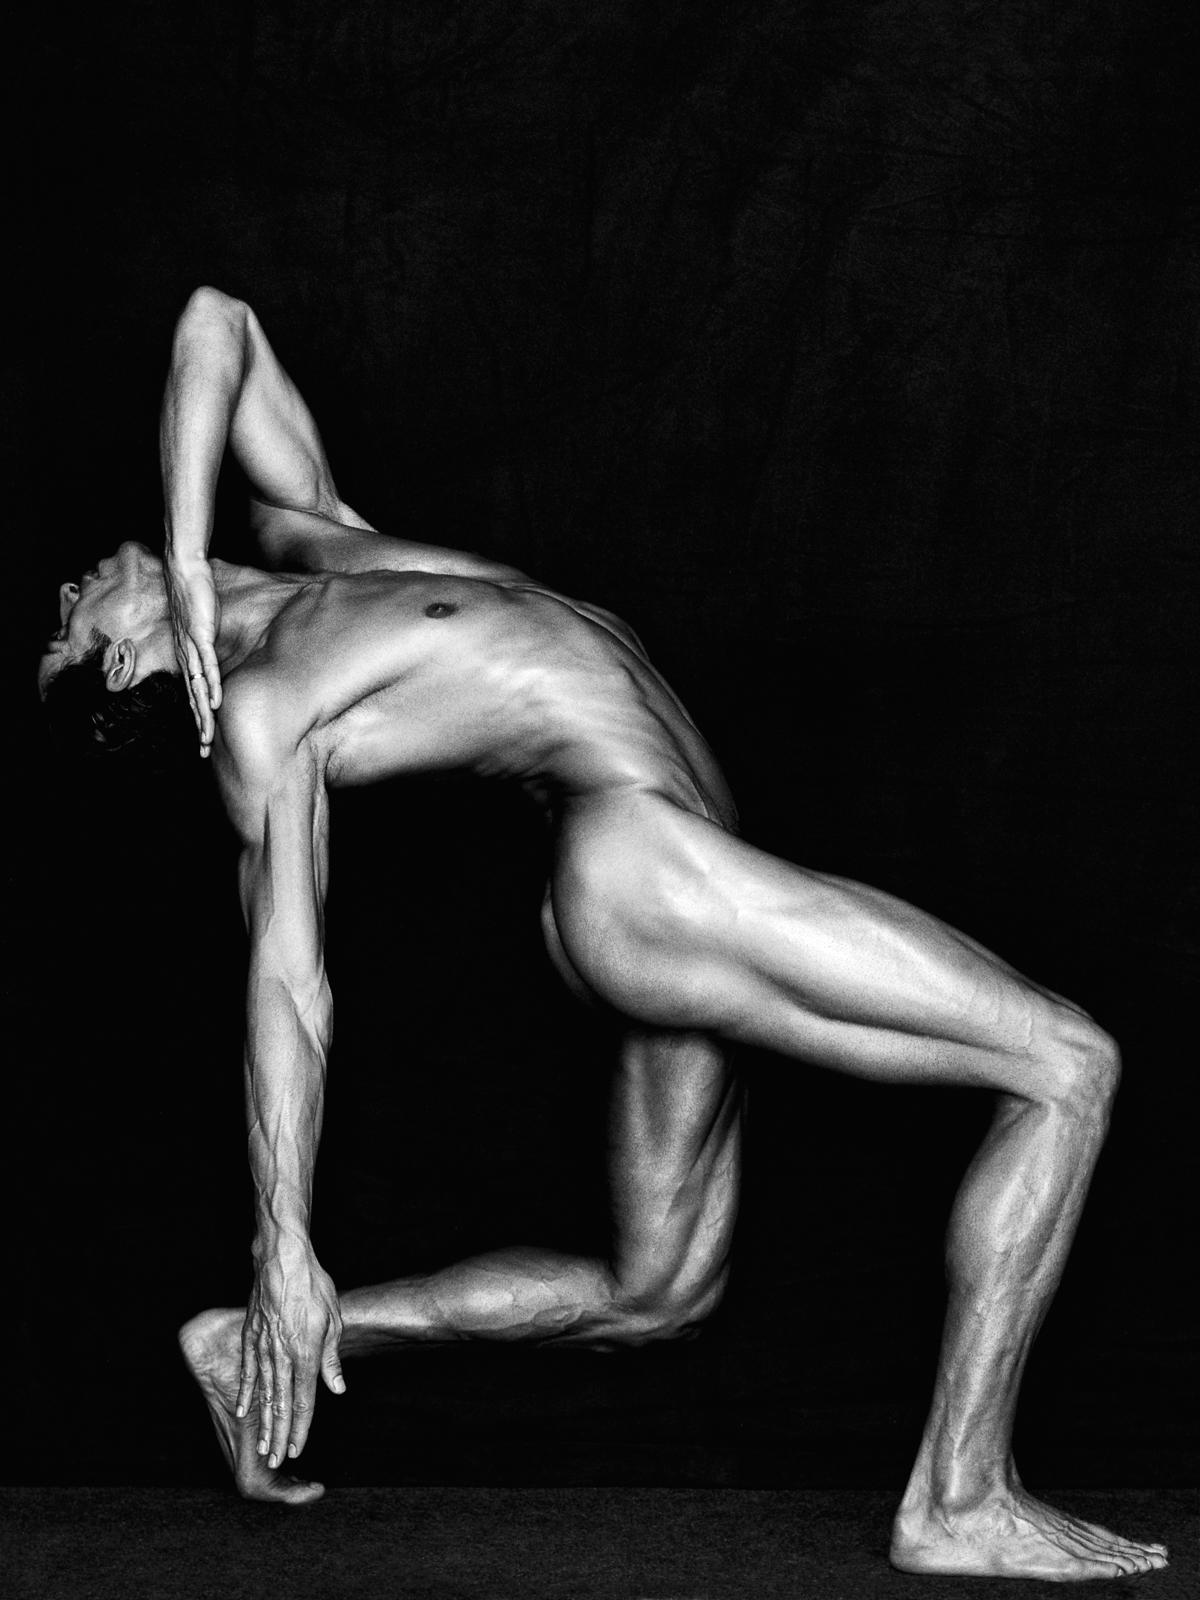 110.03.98, More Typographic Creations series (Male Dancer Photograph)